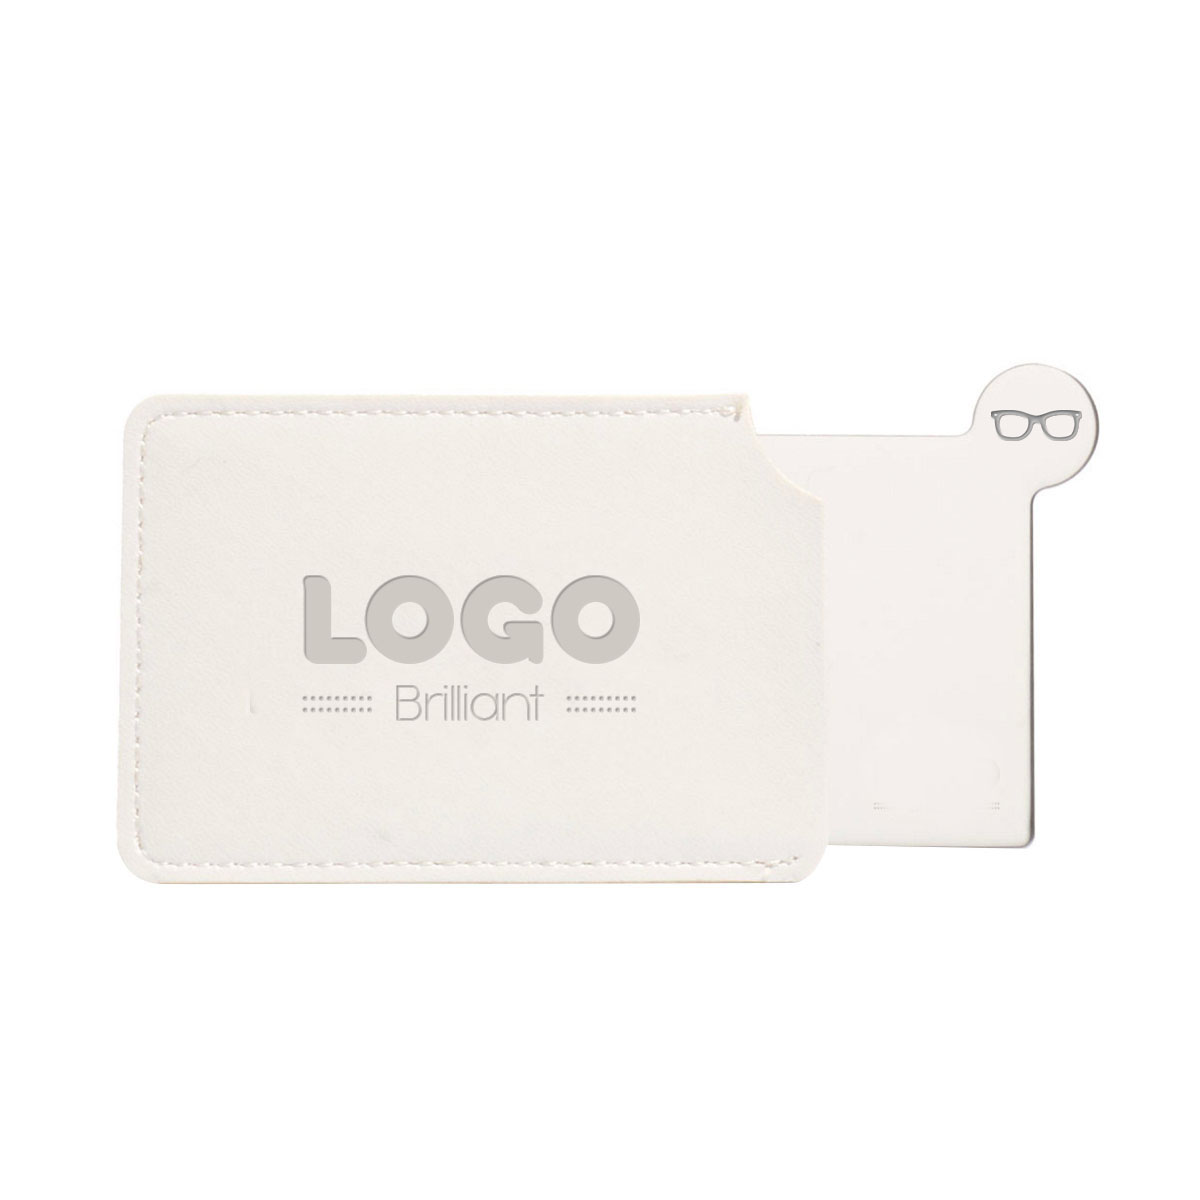 134785 stainless steel mirror one location embossed logo